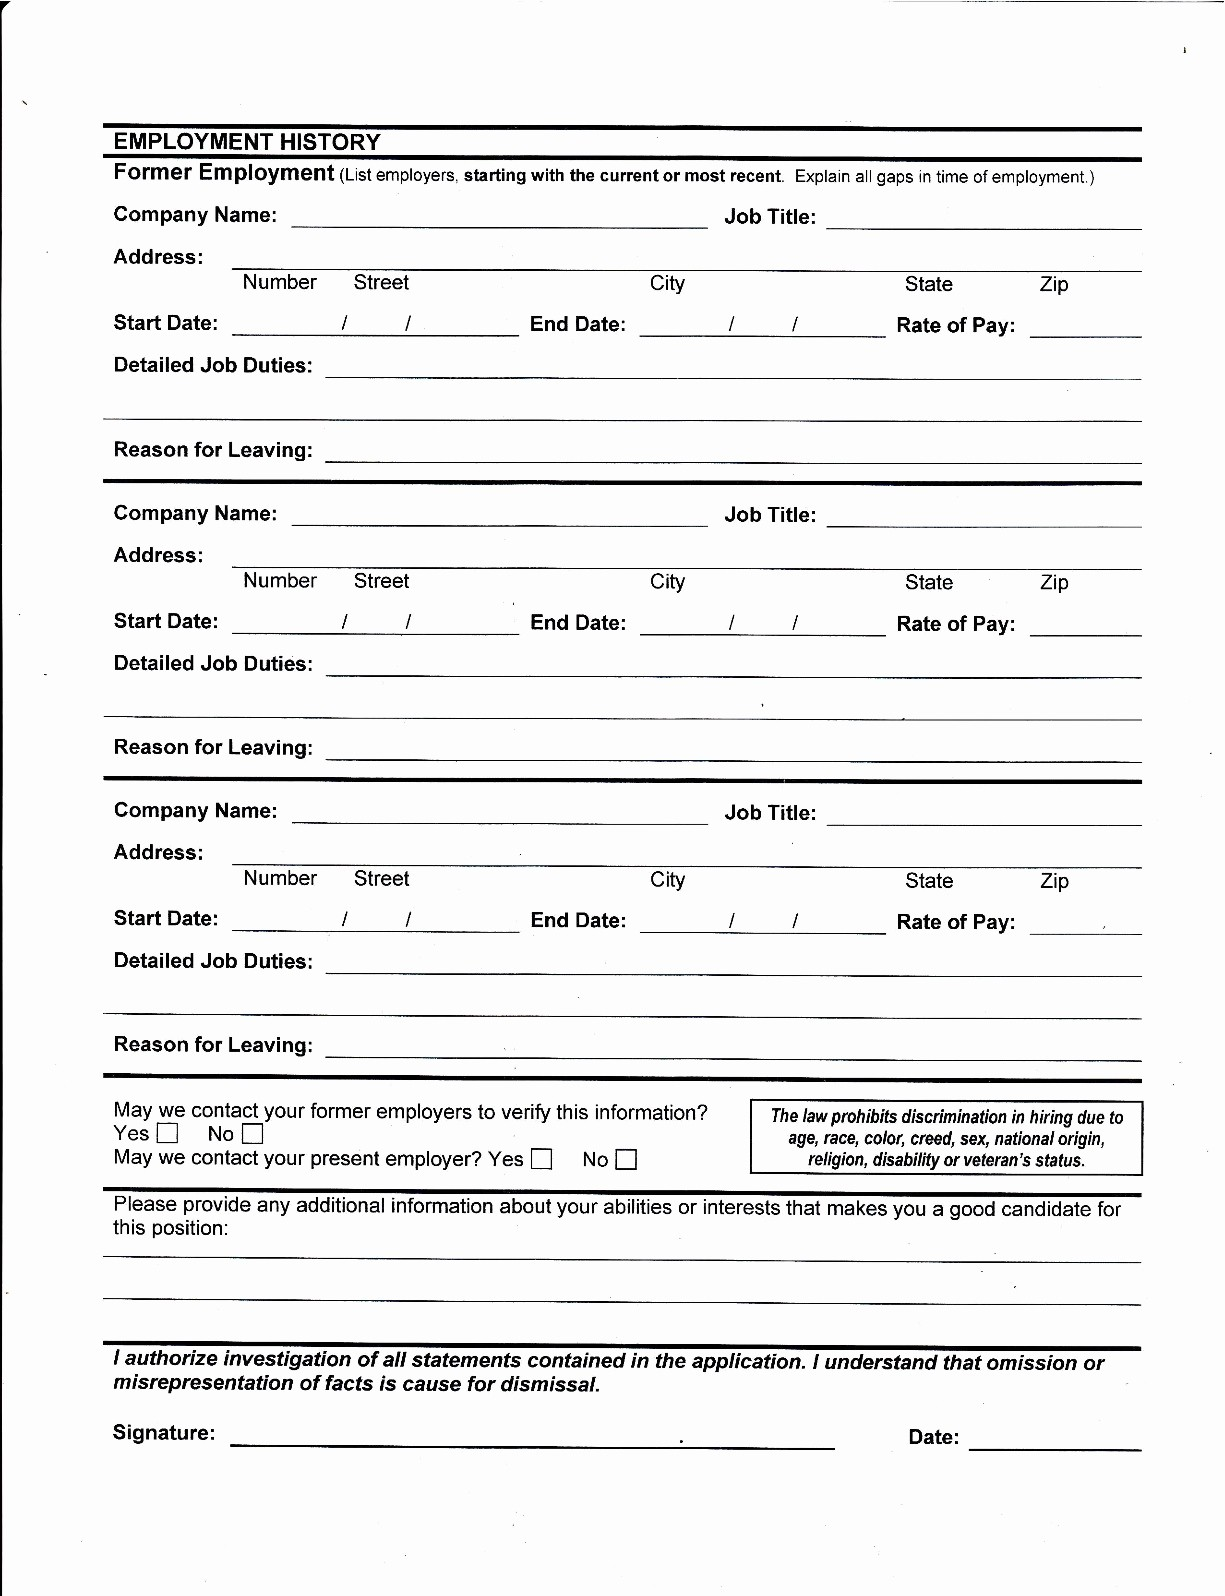 Free General Application for Employment Fresh America Do You Want to Work Printable Application